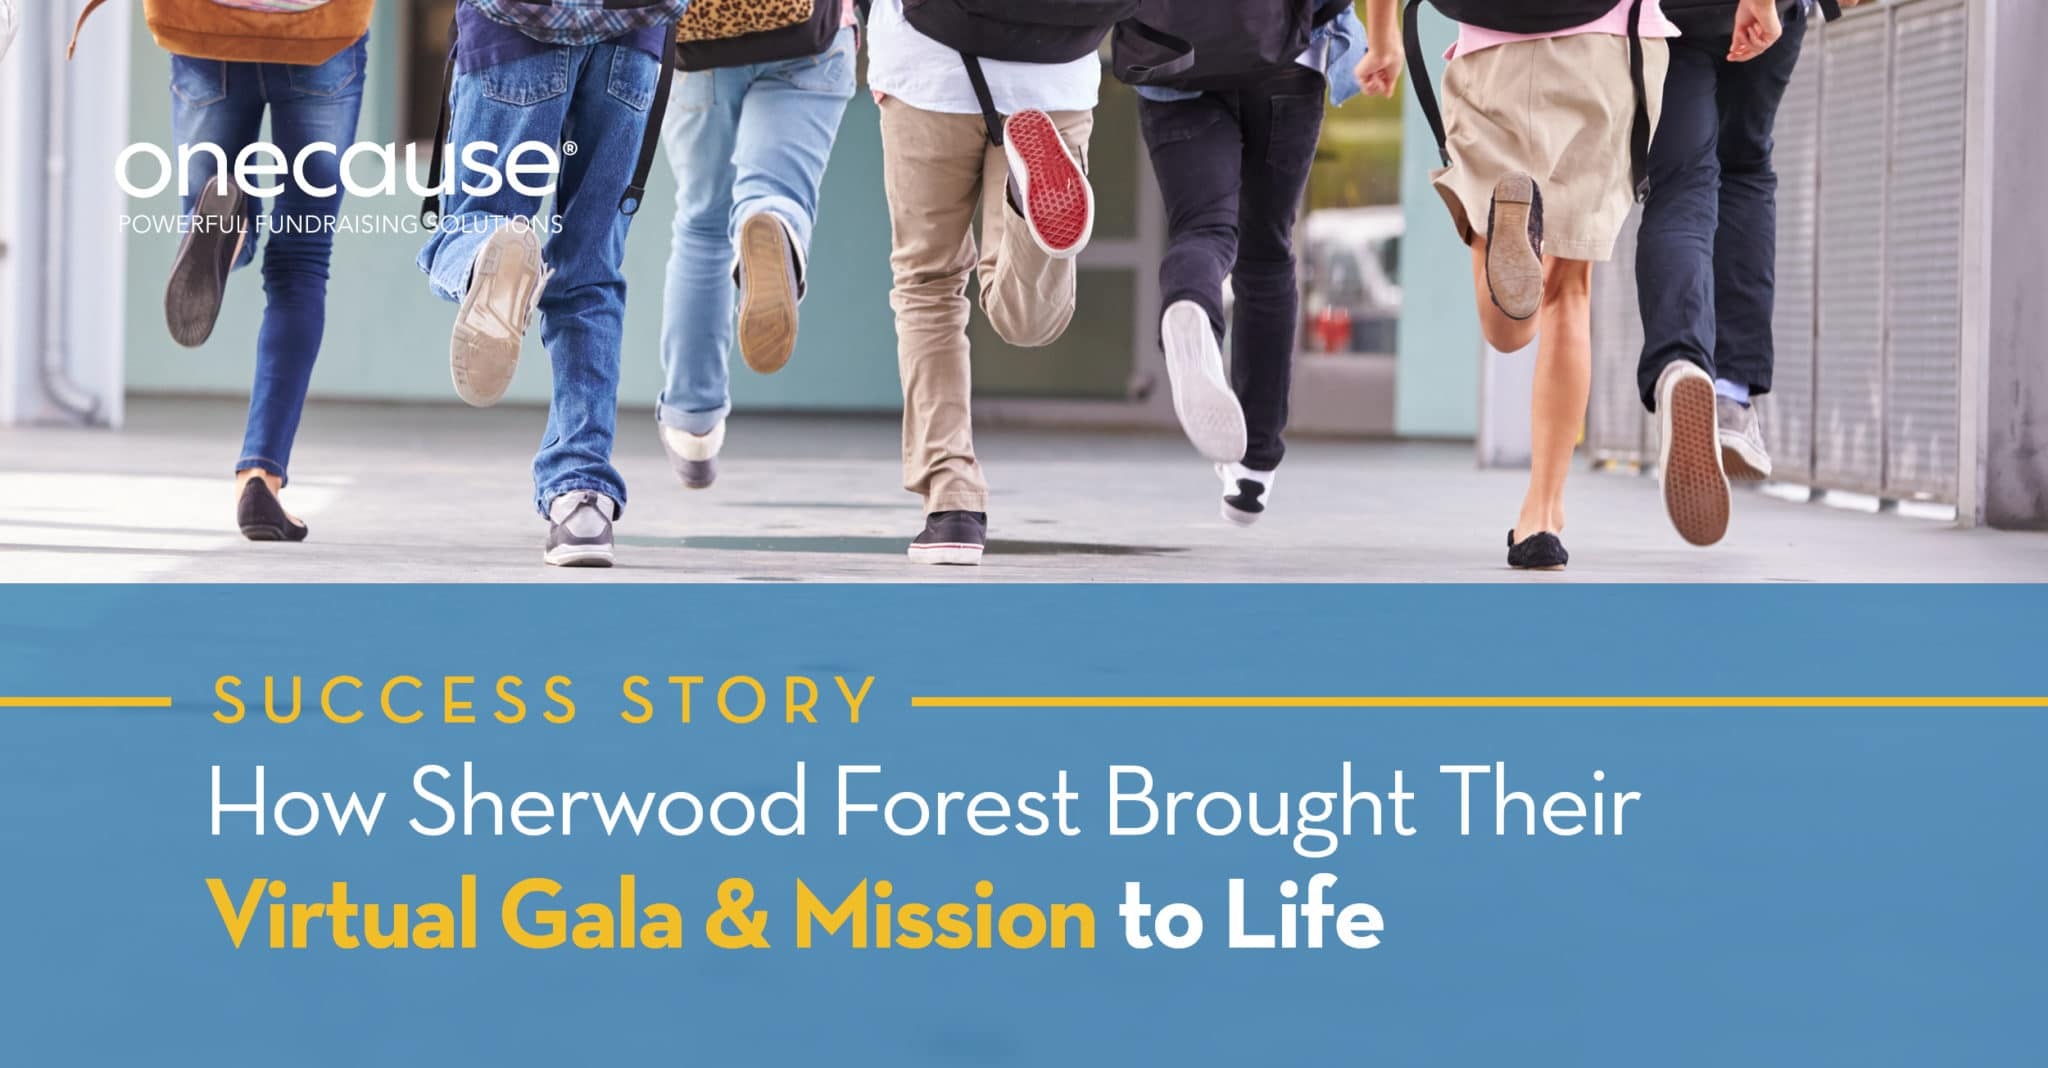 How Sherwood Forest brought Their Virtual Gala & Mission to Life